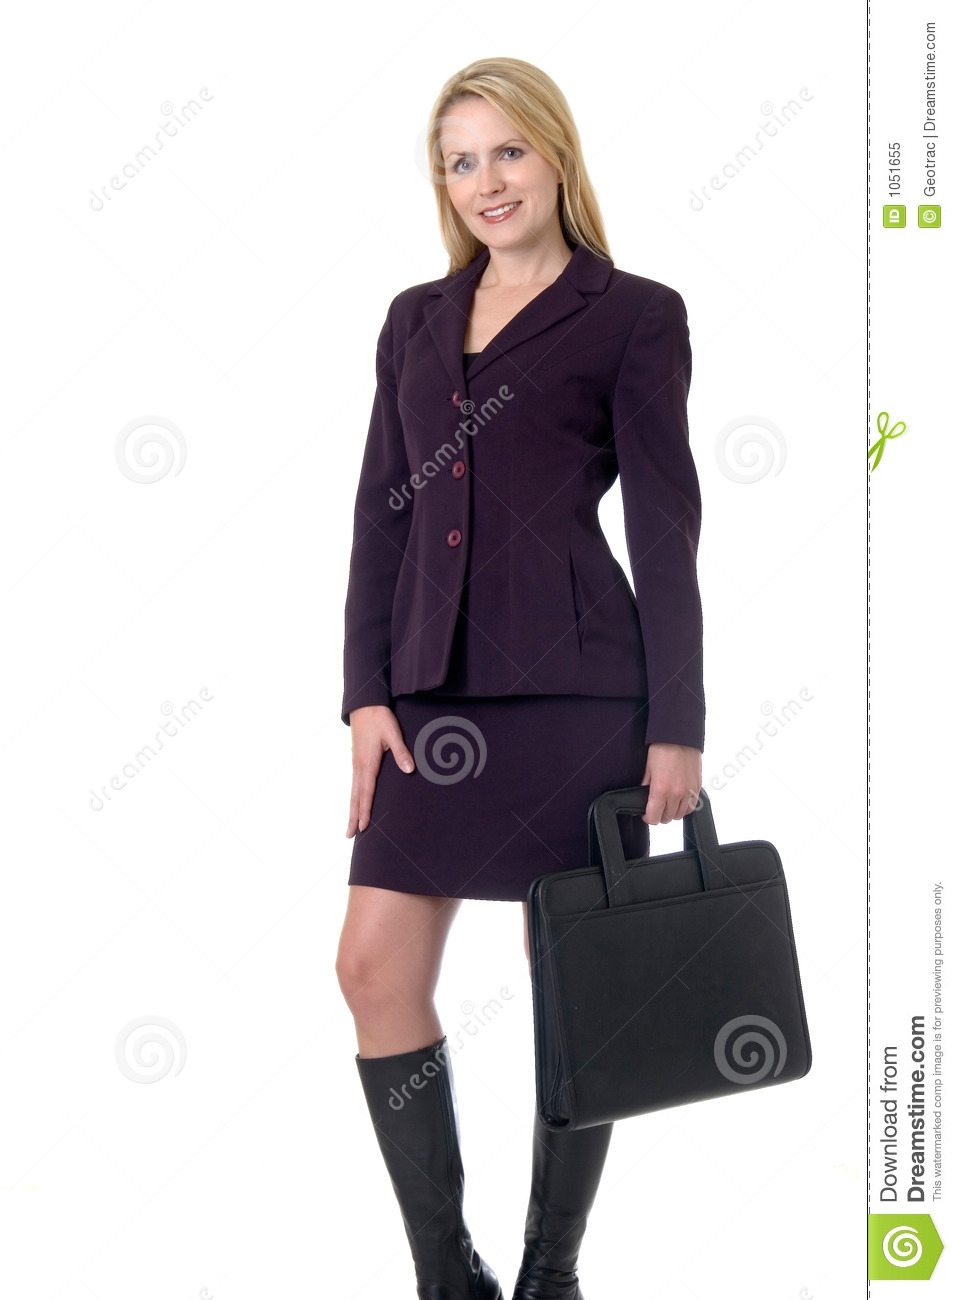 What Is Business Casual Attire For Women